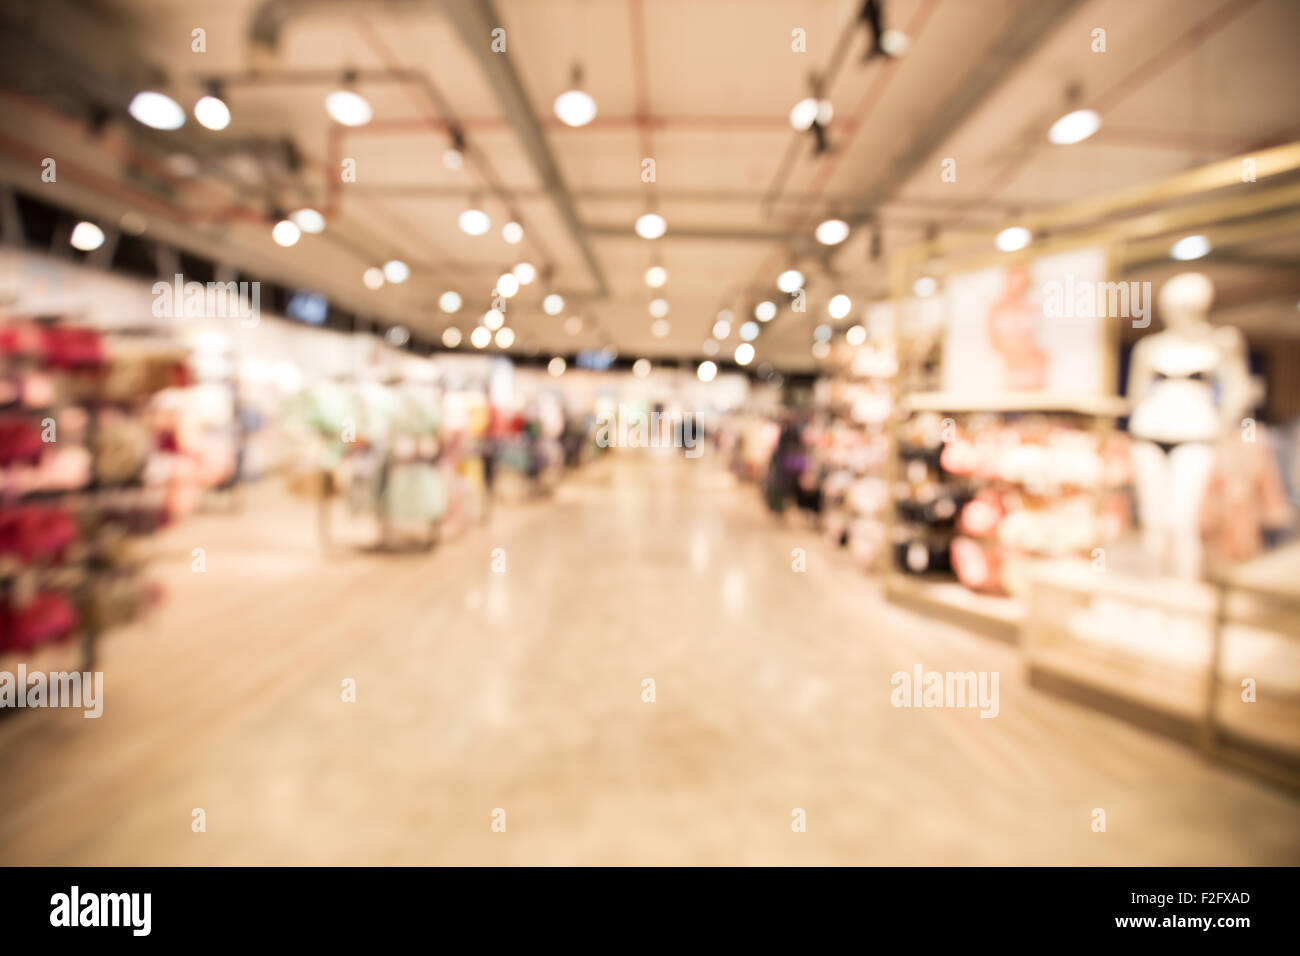 out of focus shot from the inside of a department store, showing the womens clothing department Stock Photo